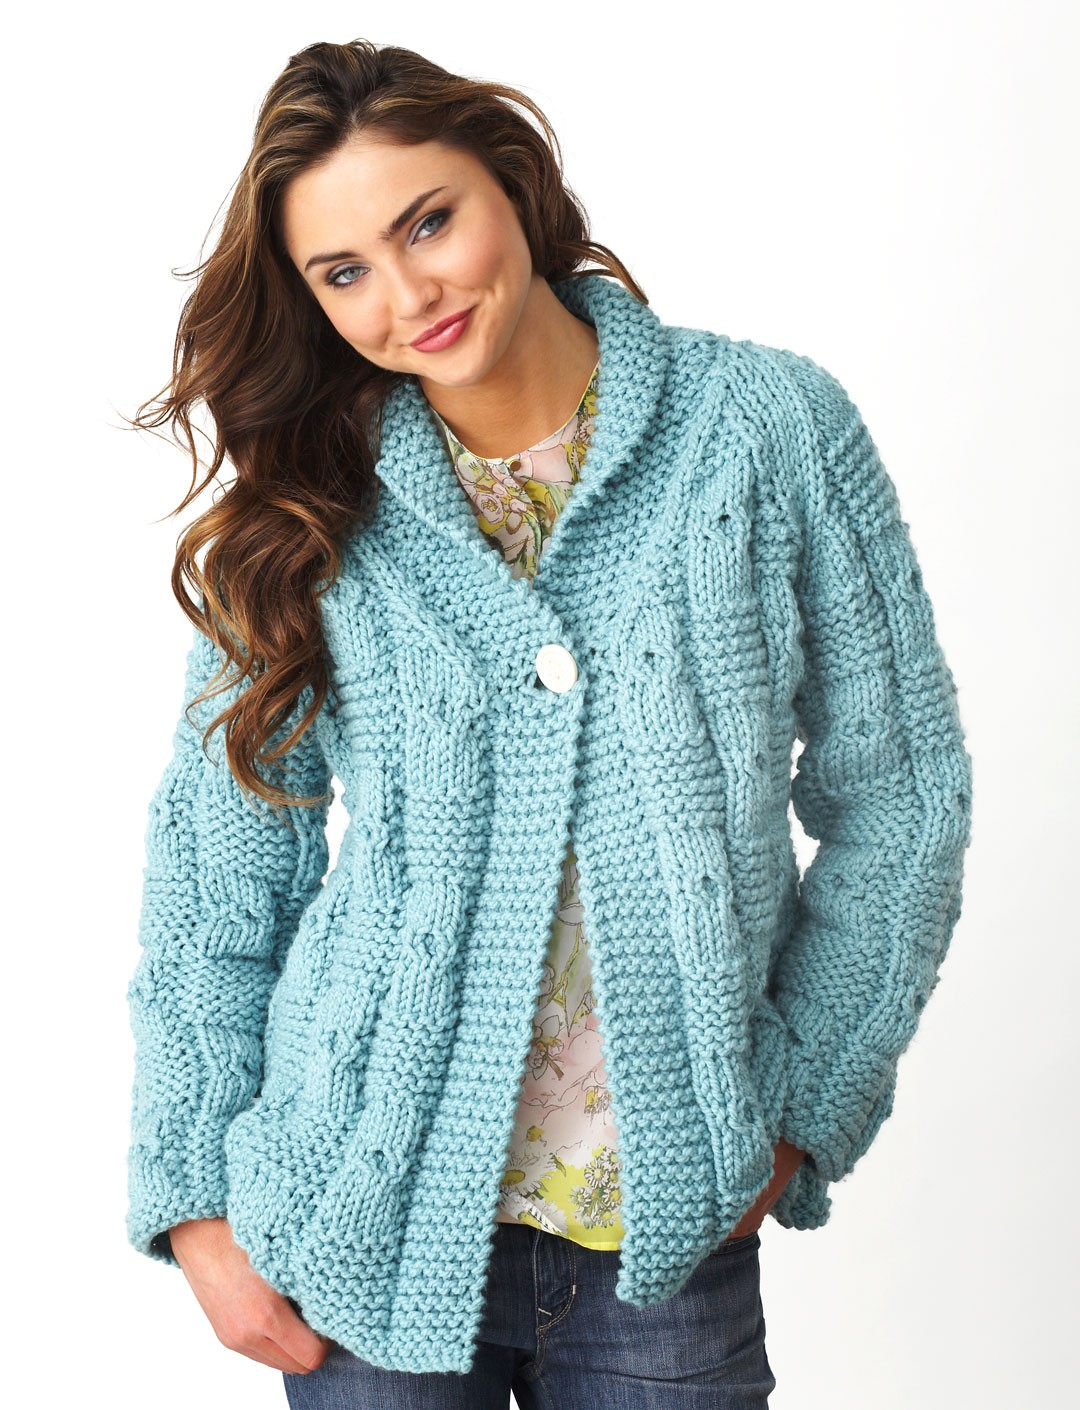 Chunky Knit Sweater Pattern Free : Bernat Textured Checks Cardigan, Knit Pattern Yarnspirations